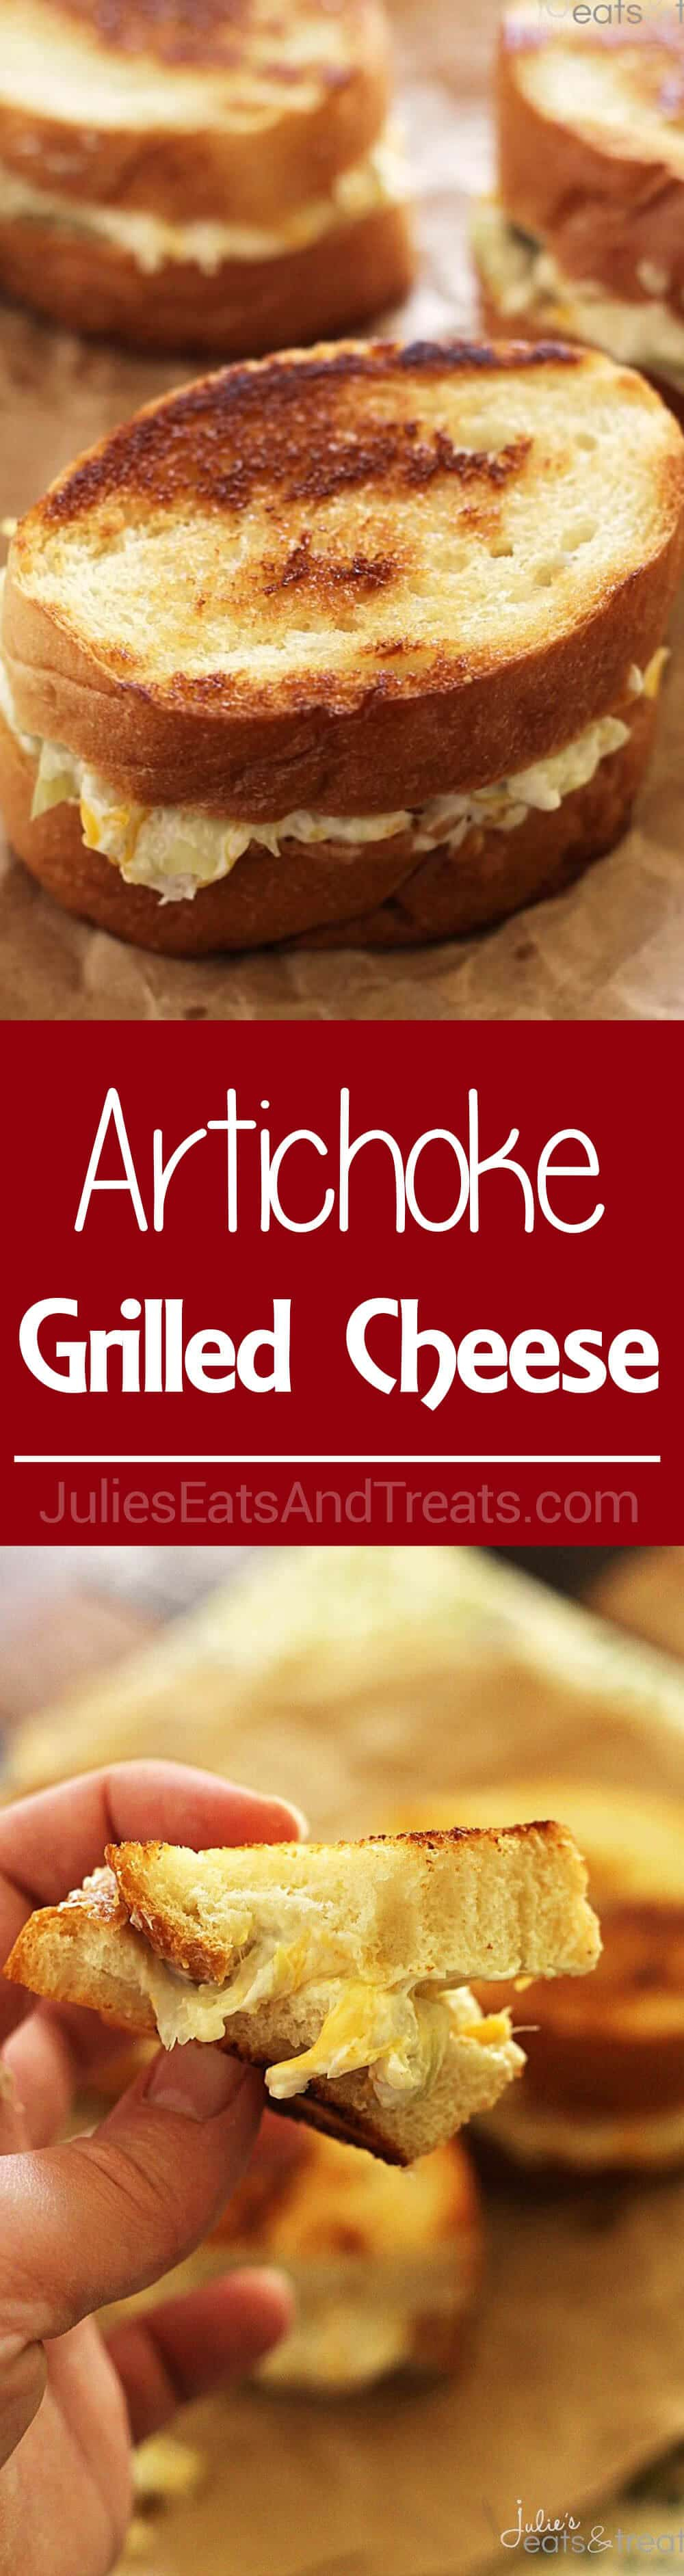 Artichoke Grilled Cheese ~ Delicious Easy Sandwiches Piled High with Cheese and Artichokes!